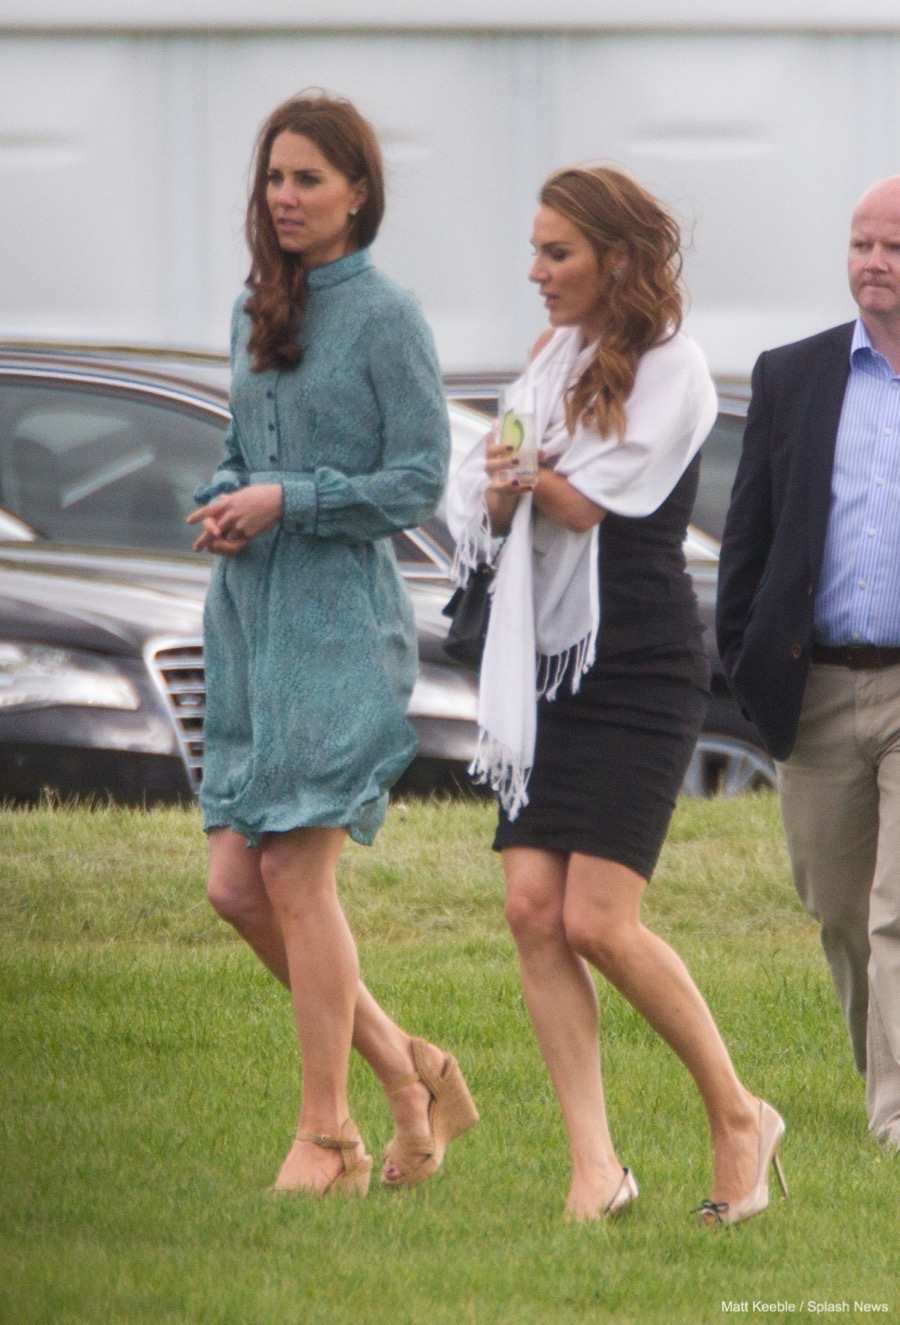 Kate Middleton wearing the Stuart Weitzman minx wedges to a polo match in 2012